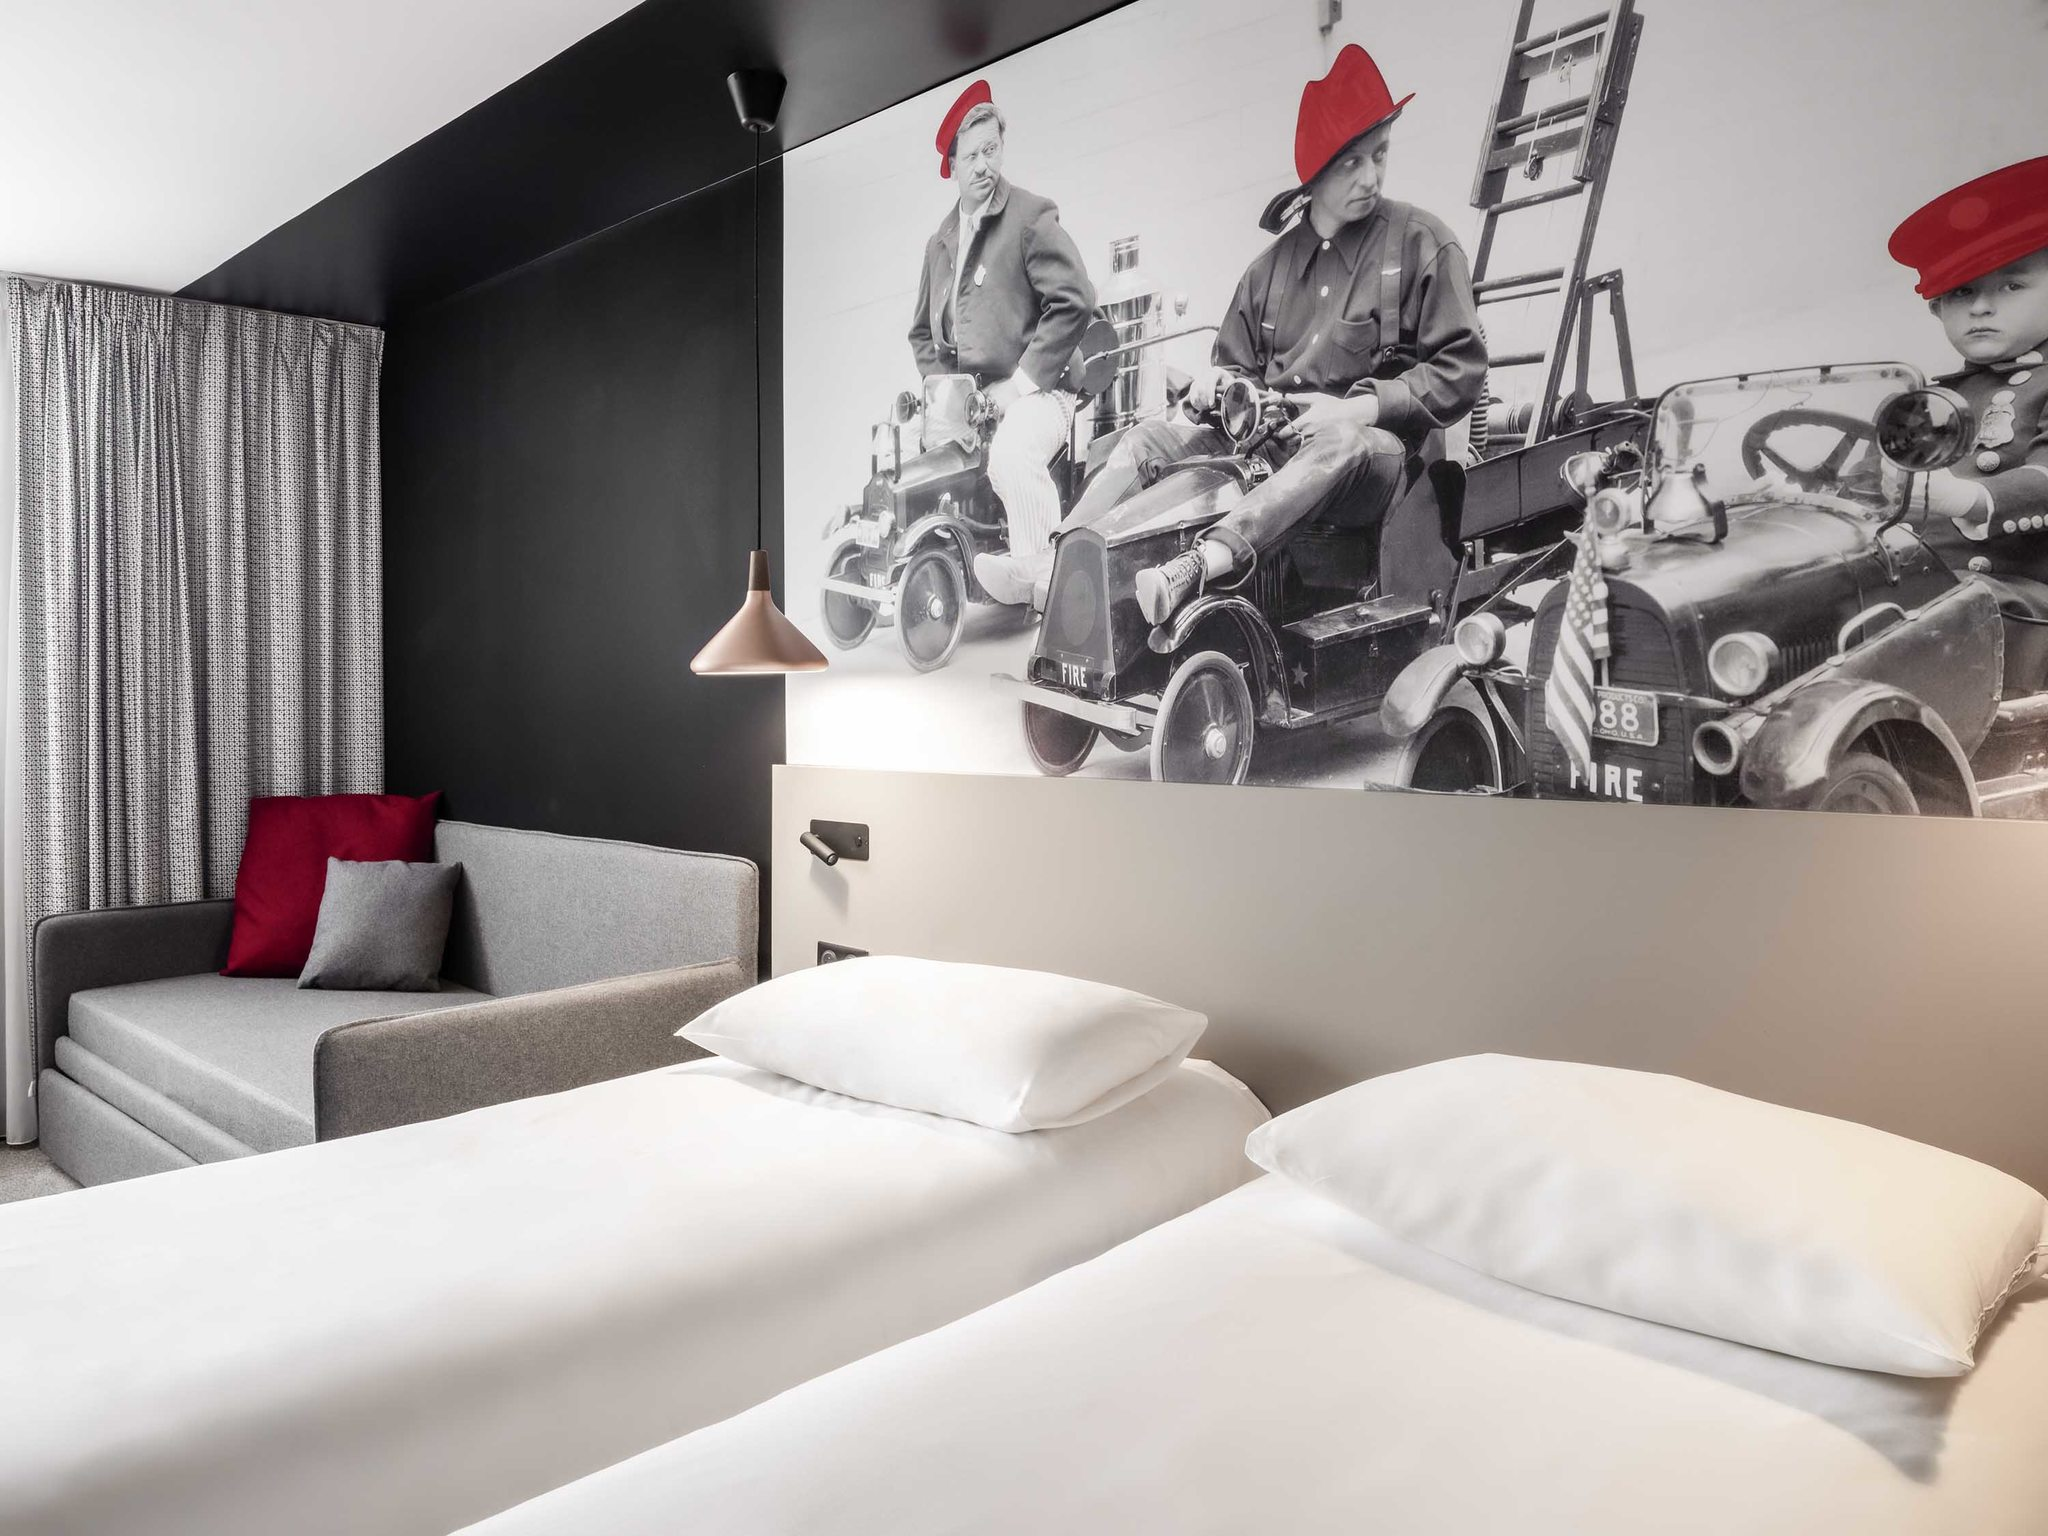 Hotel Le Mans Gare Nord